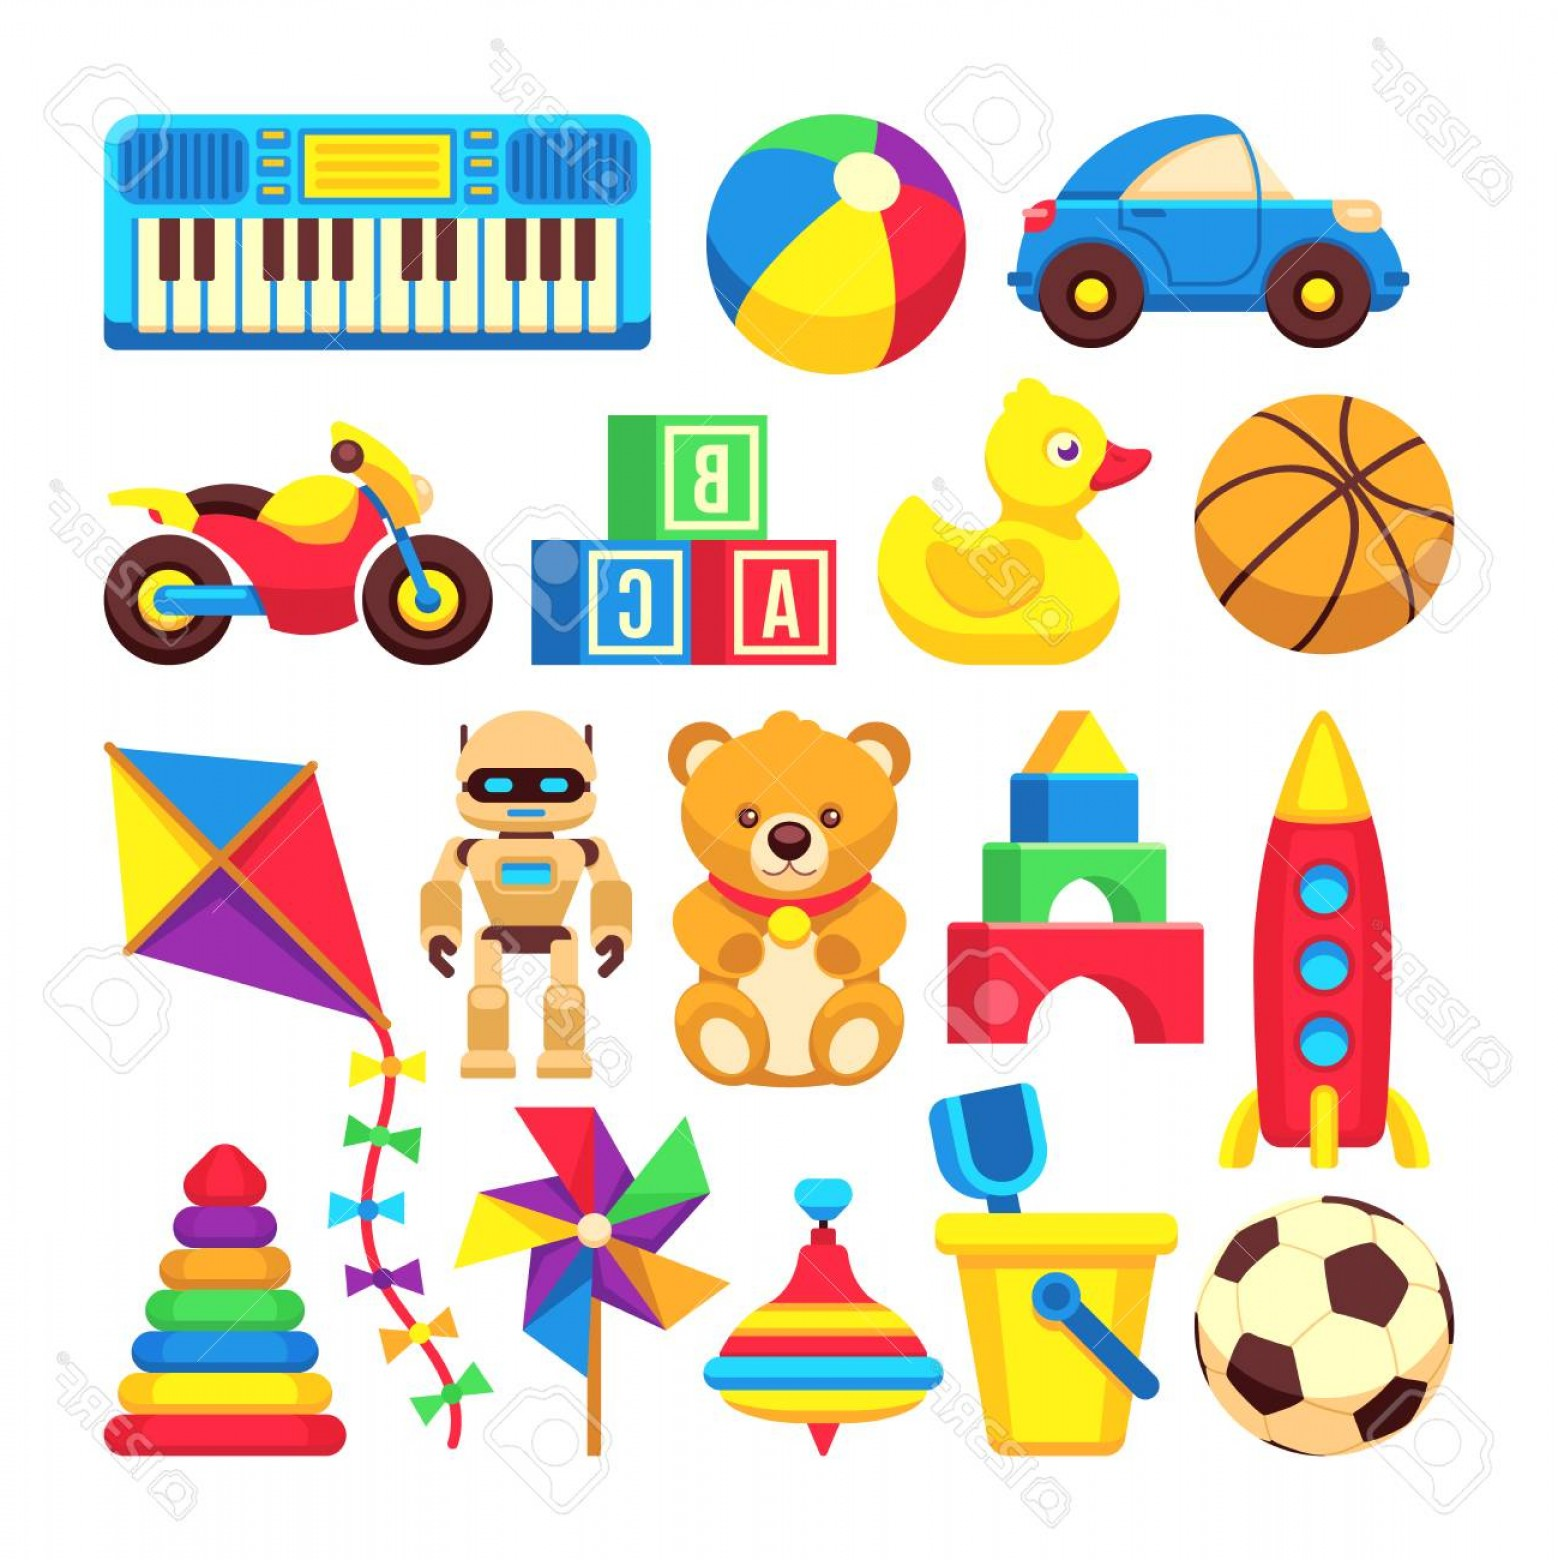 Baby Toy Vector: Photocartoon Children Toys Vector Icons Isolated On White Cartoon Baby Toys Ball And Bear Illustration Of